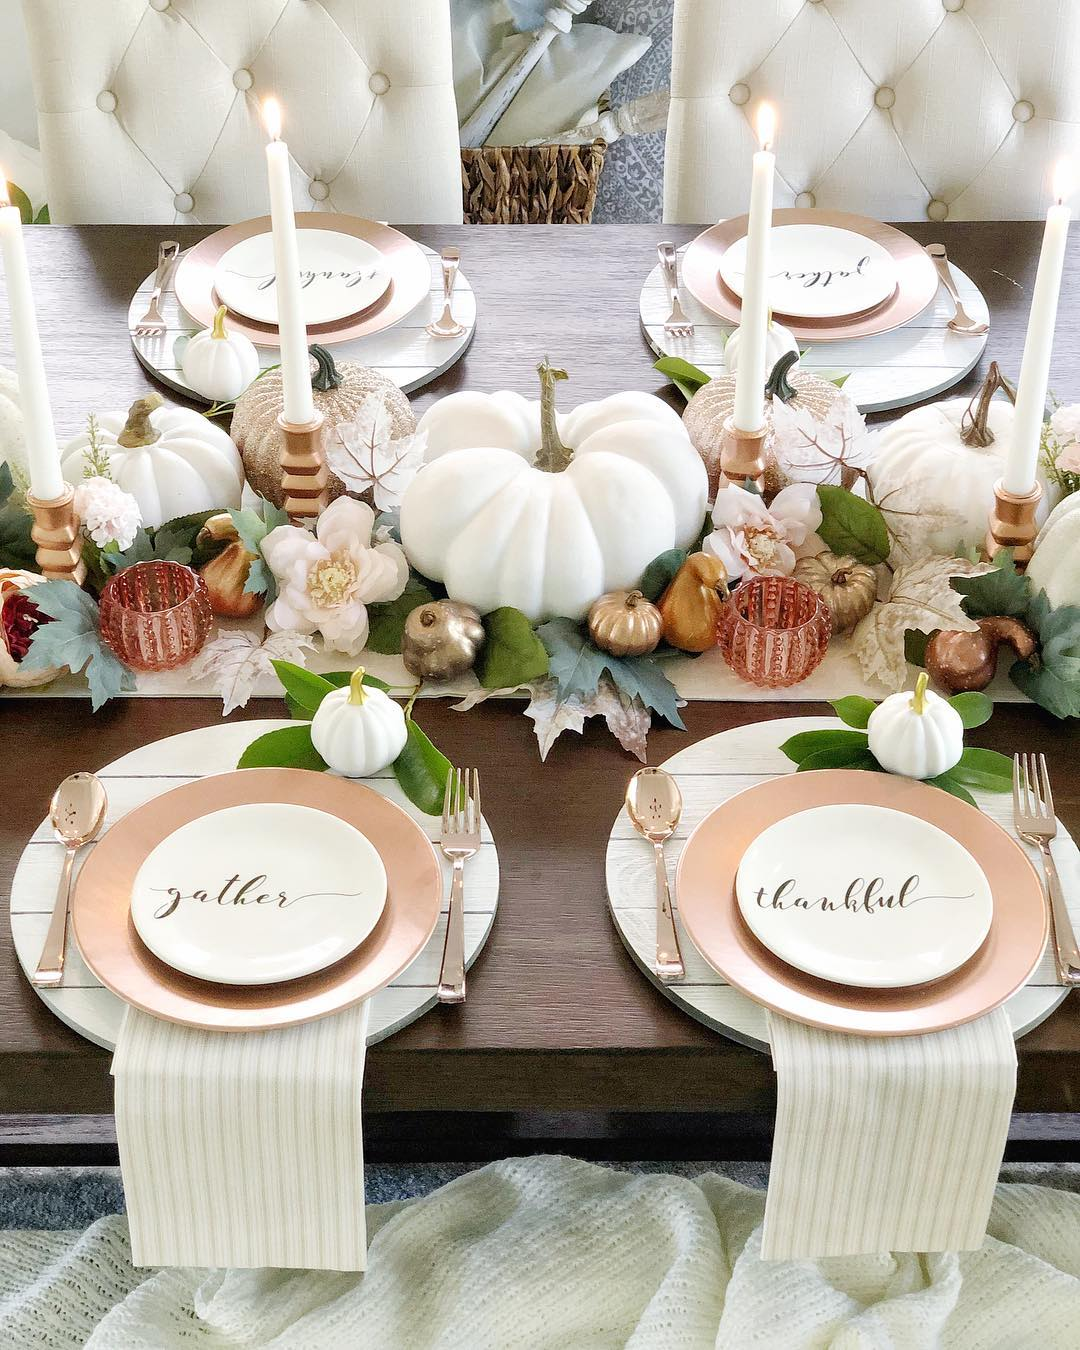 1570190897 574 funky fresh fall tablescapes from instagram - Funky Fresh Fall Tablescapes From Instagram